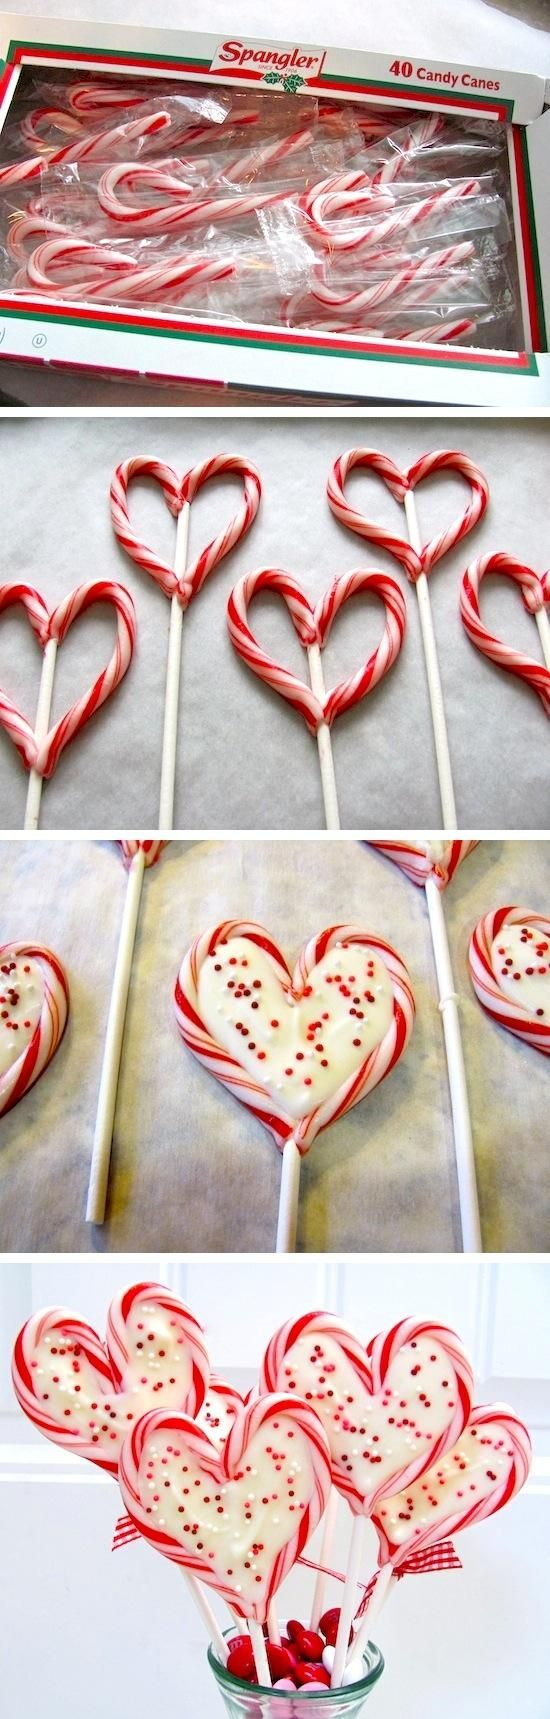 Peppermint Heart Pops, cute and easy idea for Valentines Day or Christmas!.